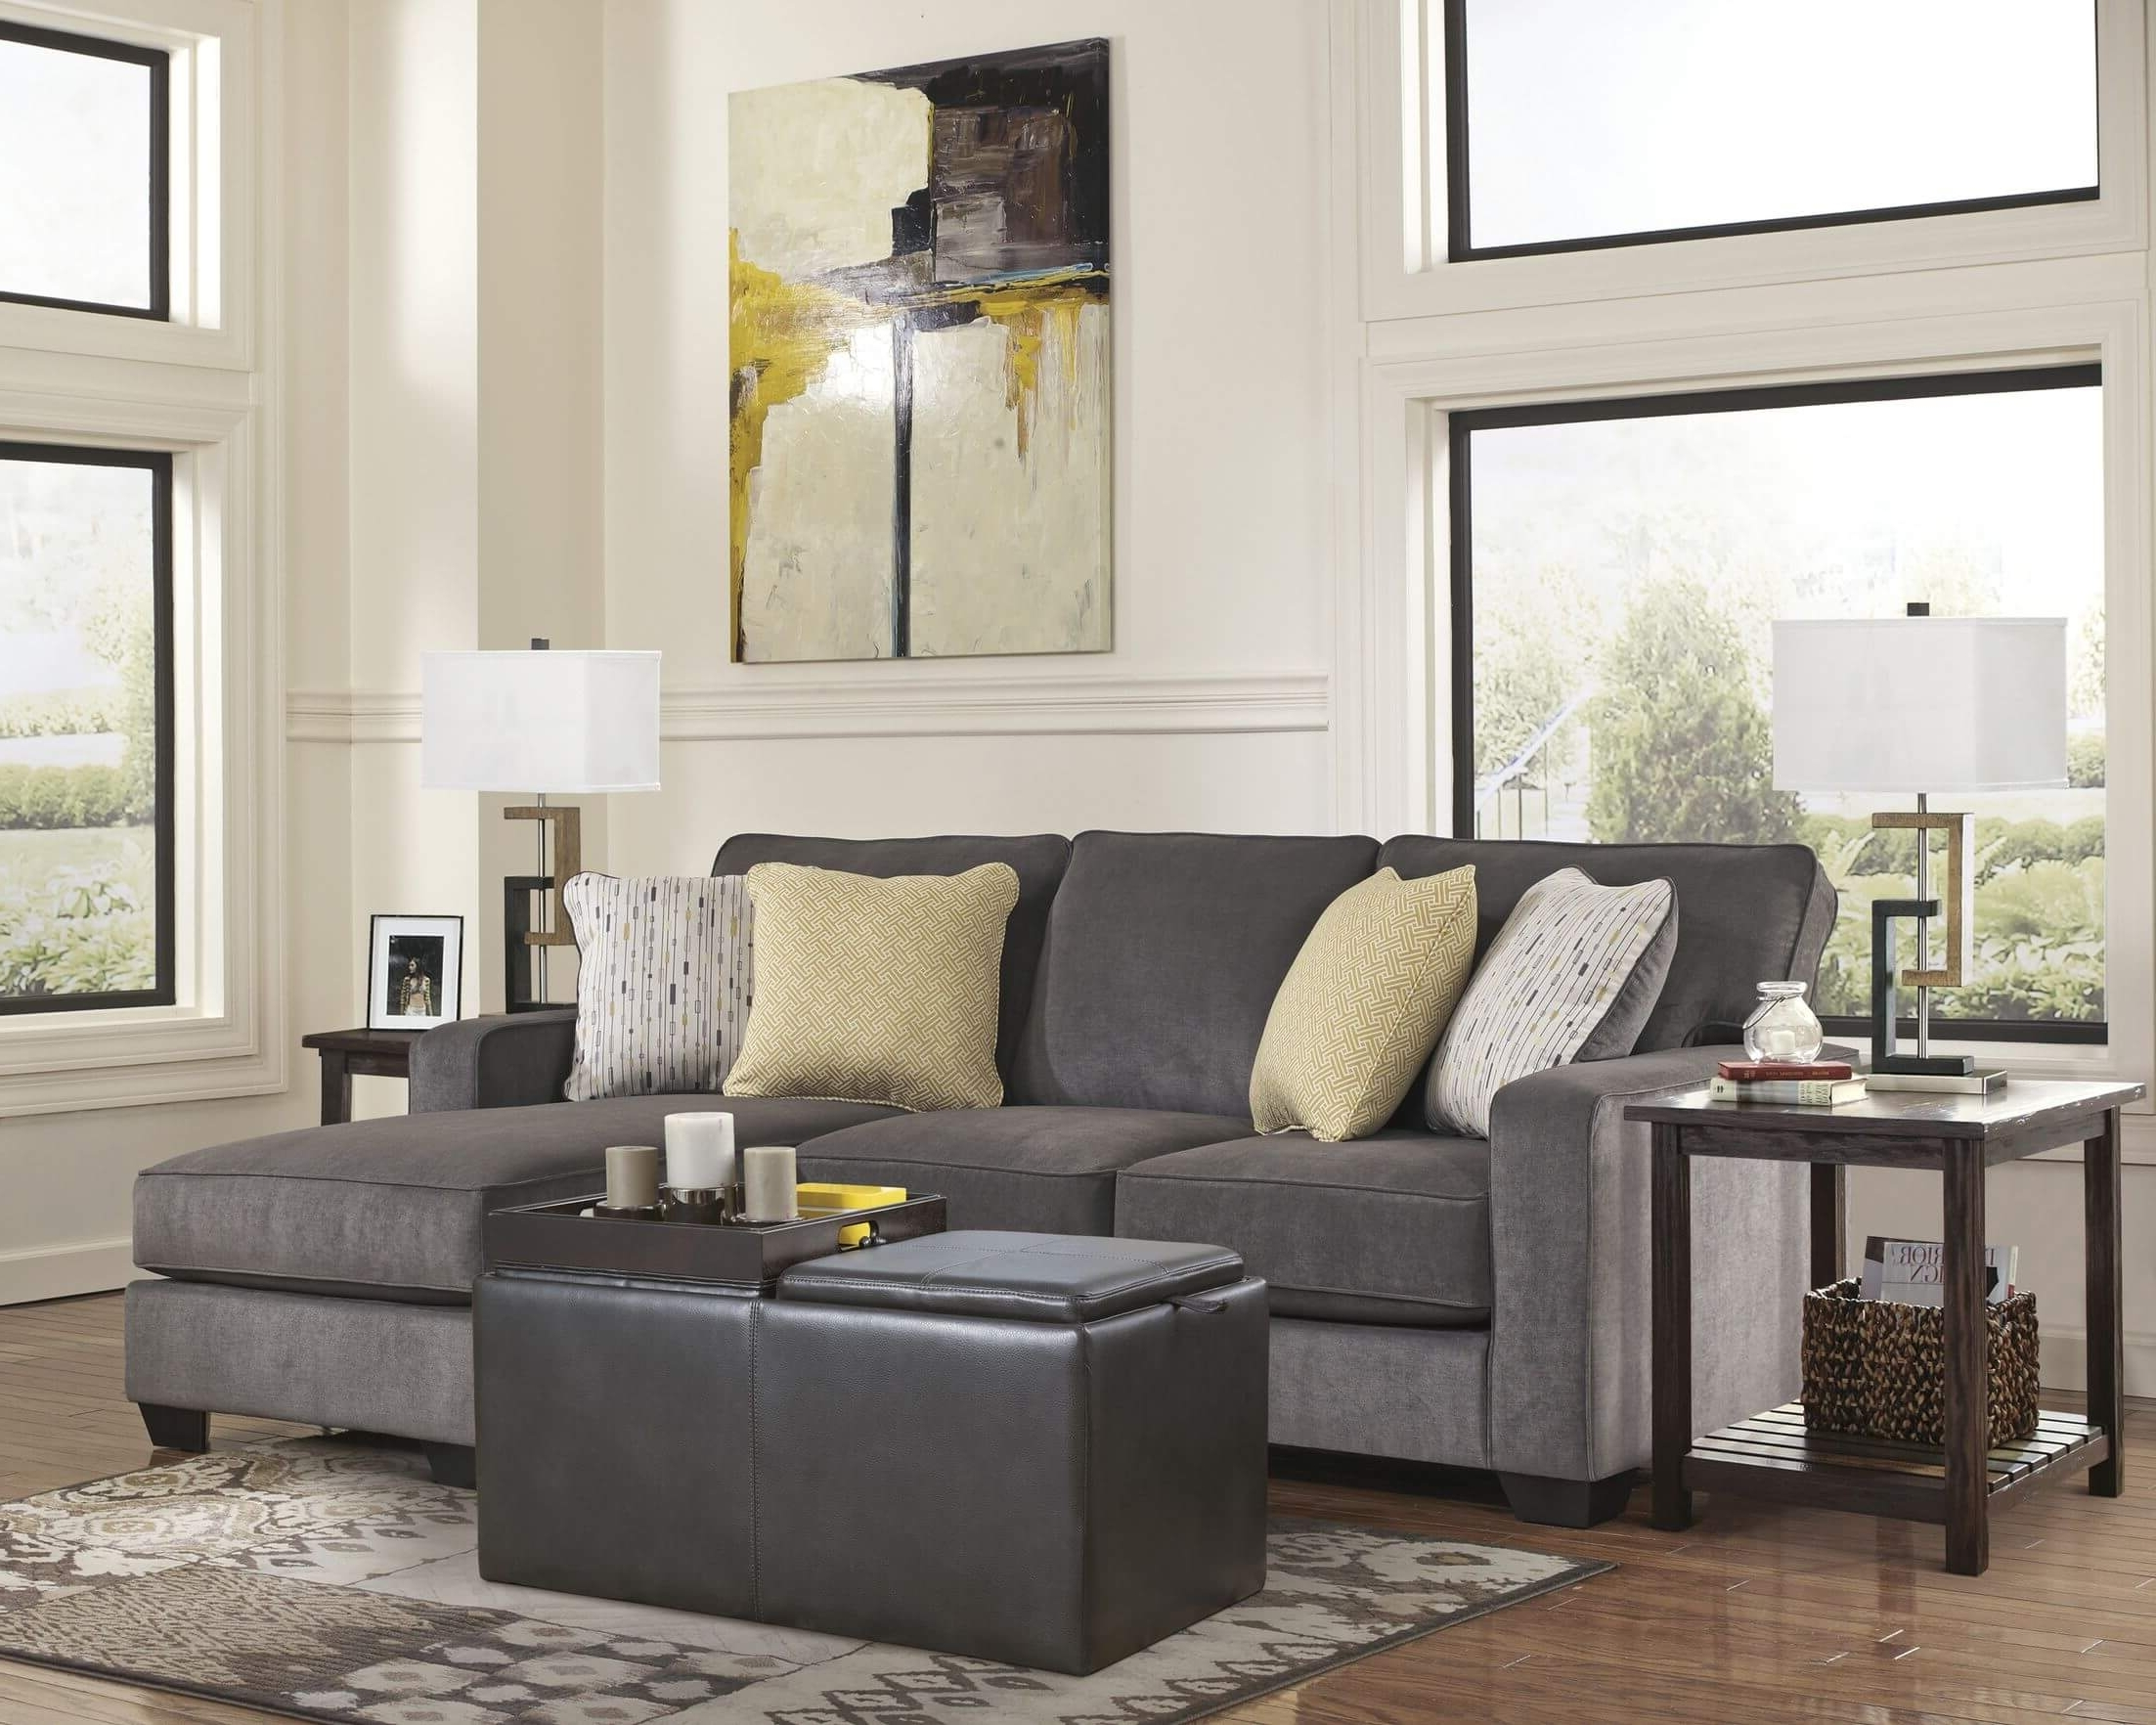 Well Known Coffee Tables For Sectional Sofa With Chaise For Wonderful Coffee Table For Sectional Sofa With Chaise 90 In Pit (View 14 of 15)